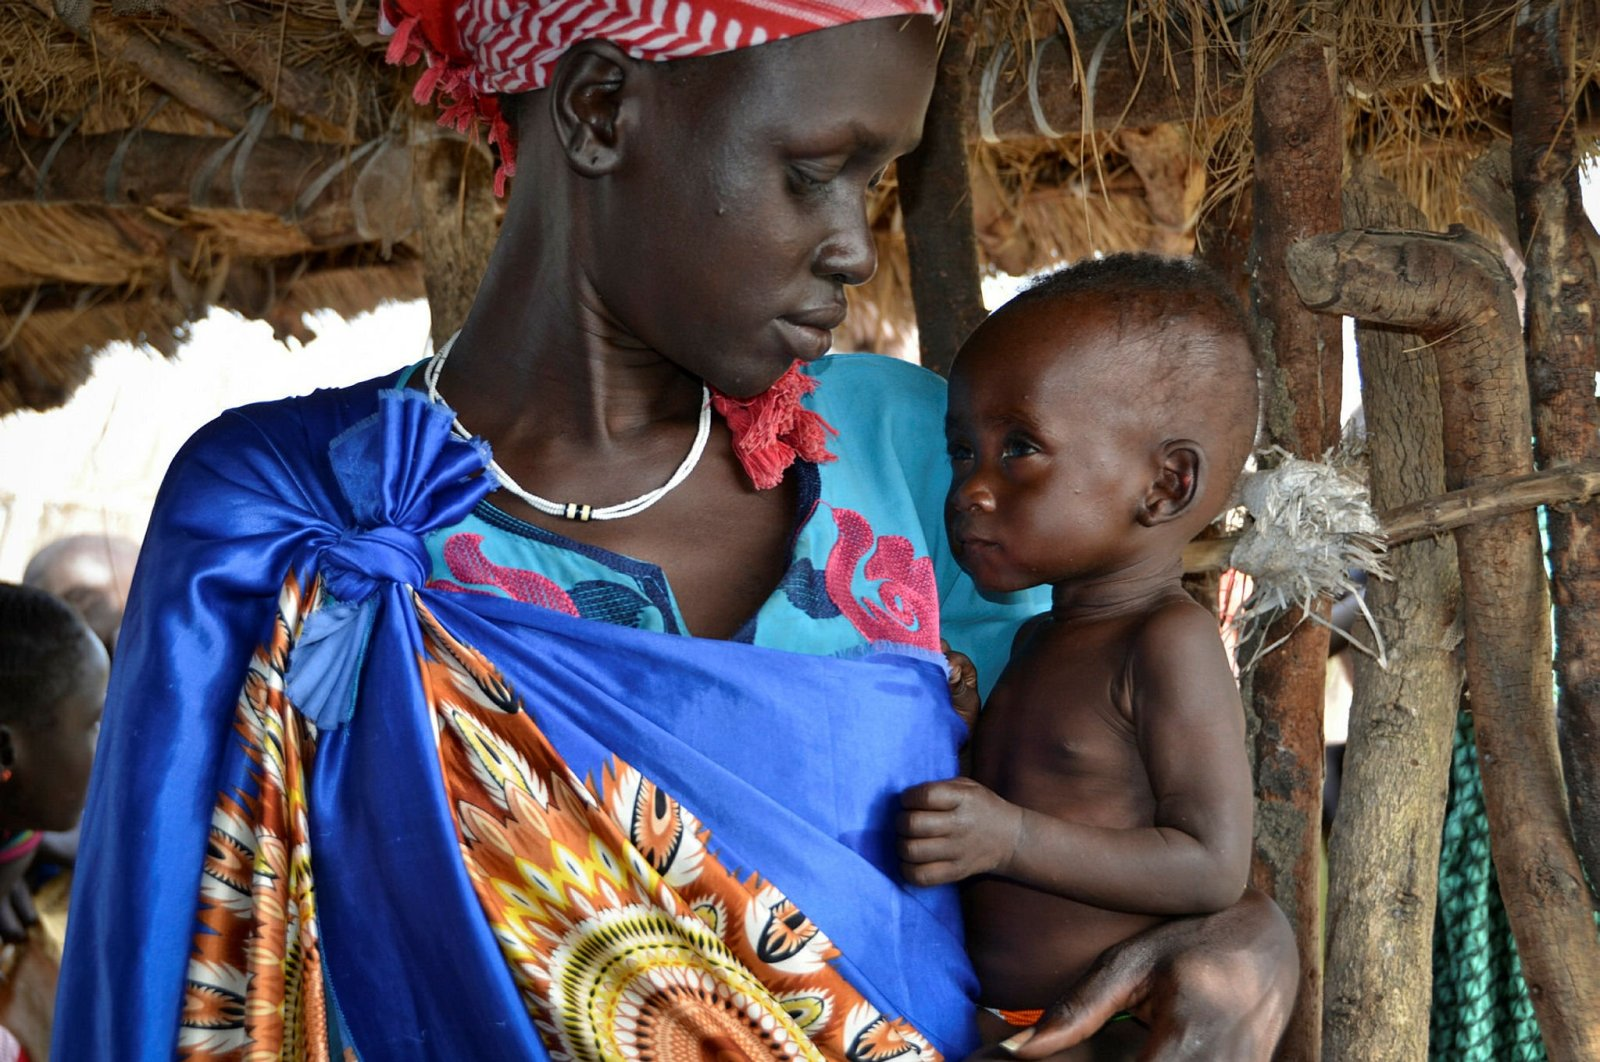 A woman holds her 10-month-old daughter at a feeding center for children in South Sudan, Dec. 10, 2017. (AP Photo)